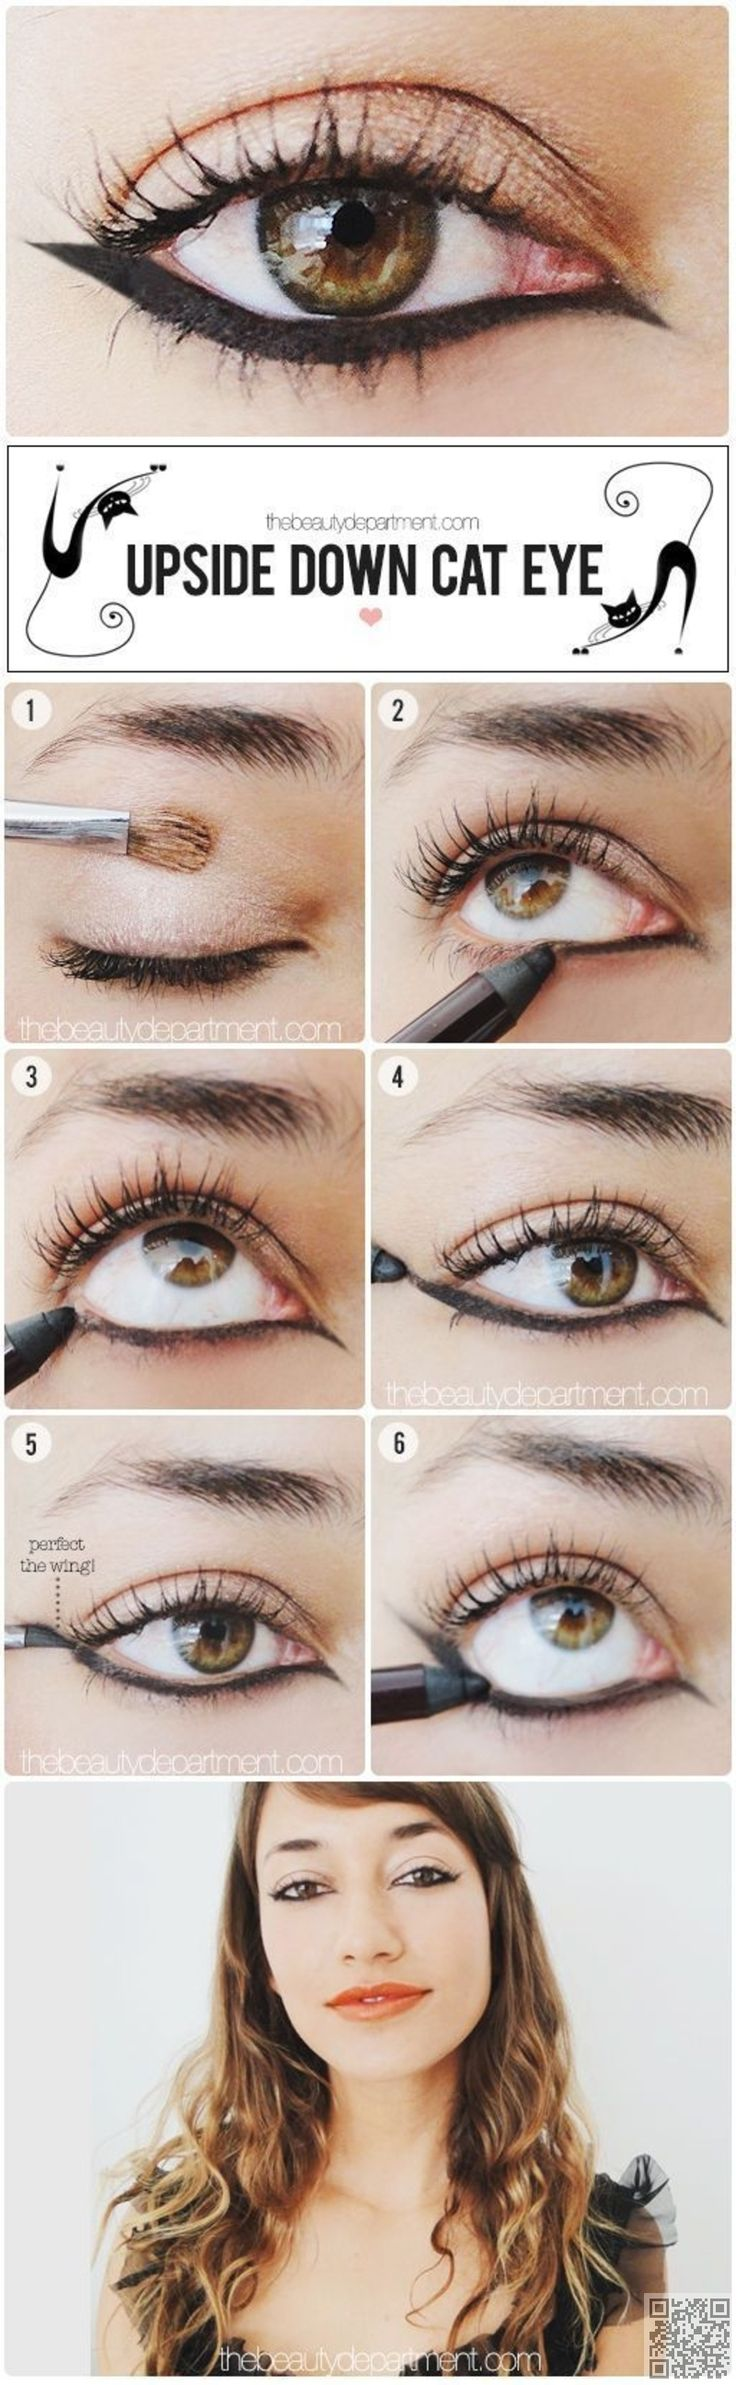 21. The #Upside down Cat Eye - 27 Tutorials That Will Ramp up Your #Eyeliner Game ... → #Makeup #Alternatives